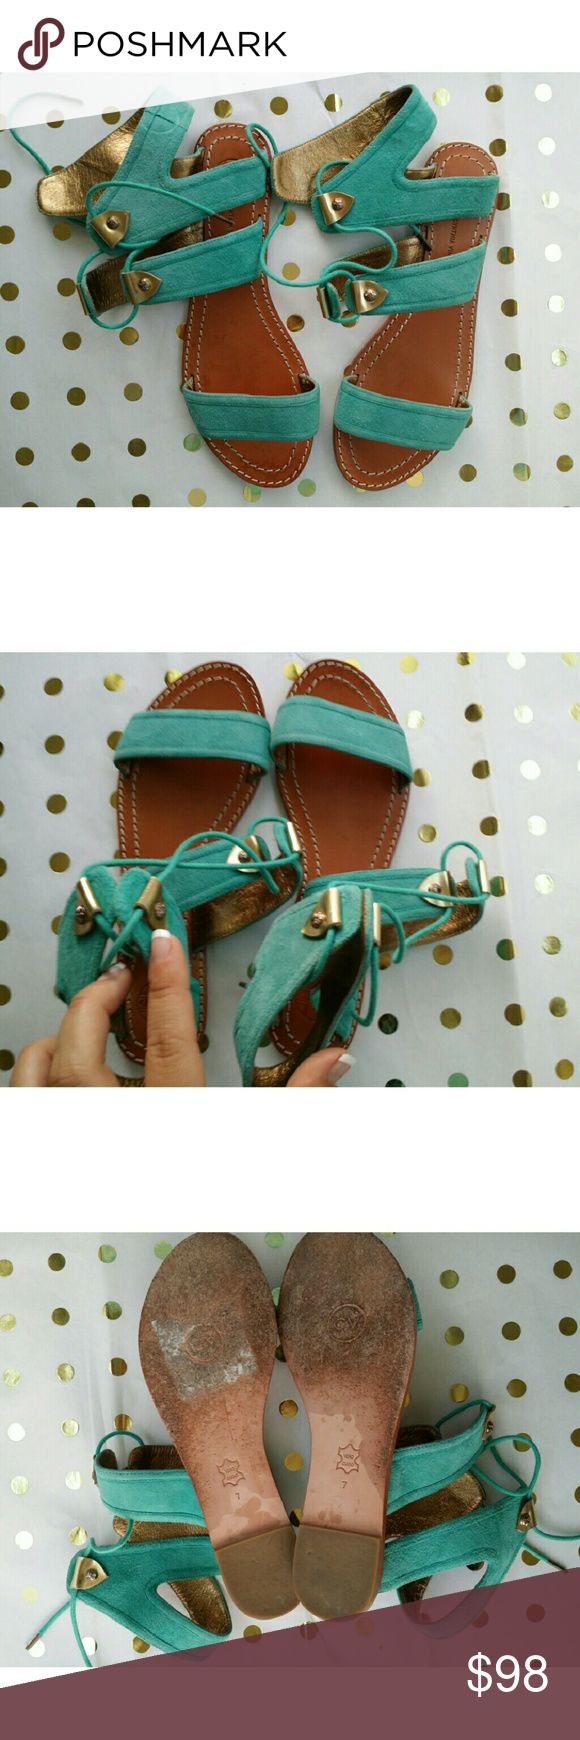 Happy Sale !! Cynthia Vincent Teal Flat Super Great Condition!  Sueded, no appliqu?s, solid colour, laces, round toeline, leather sole, flat, leather lining. Soft Leather. Cynthia Vincent Shoes Sandals